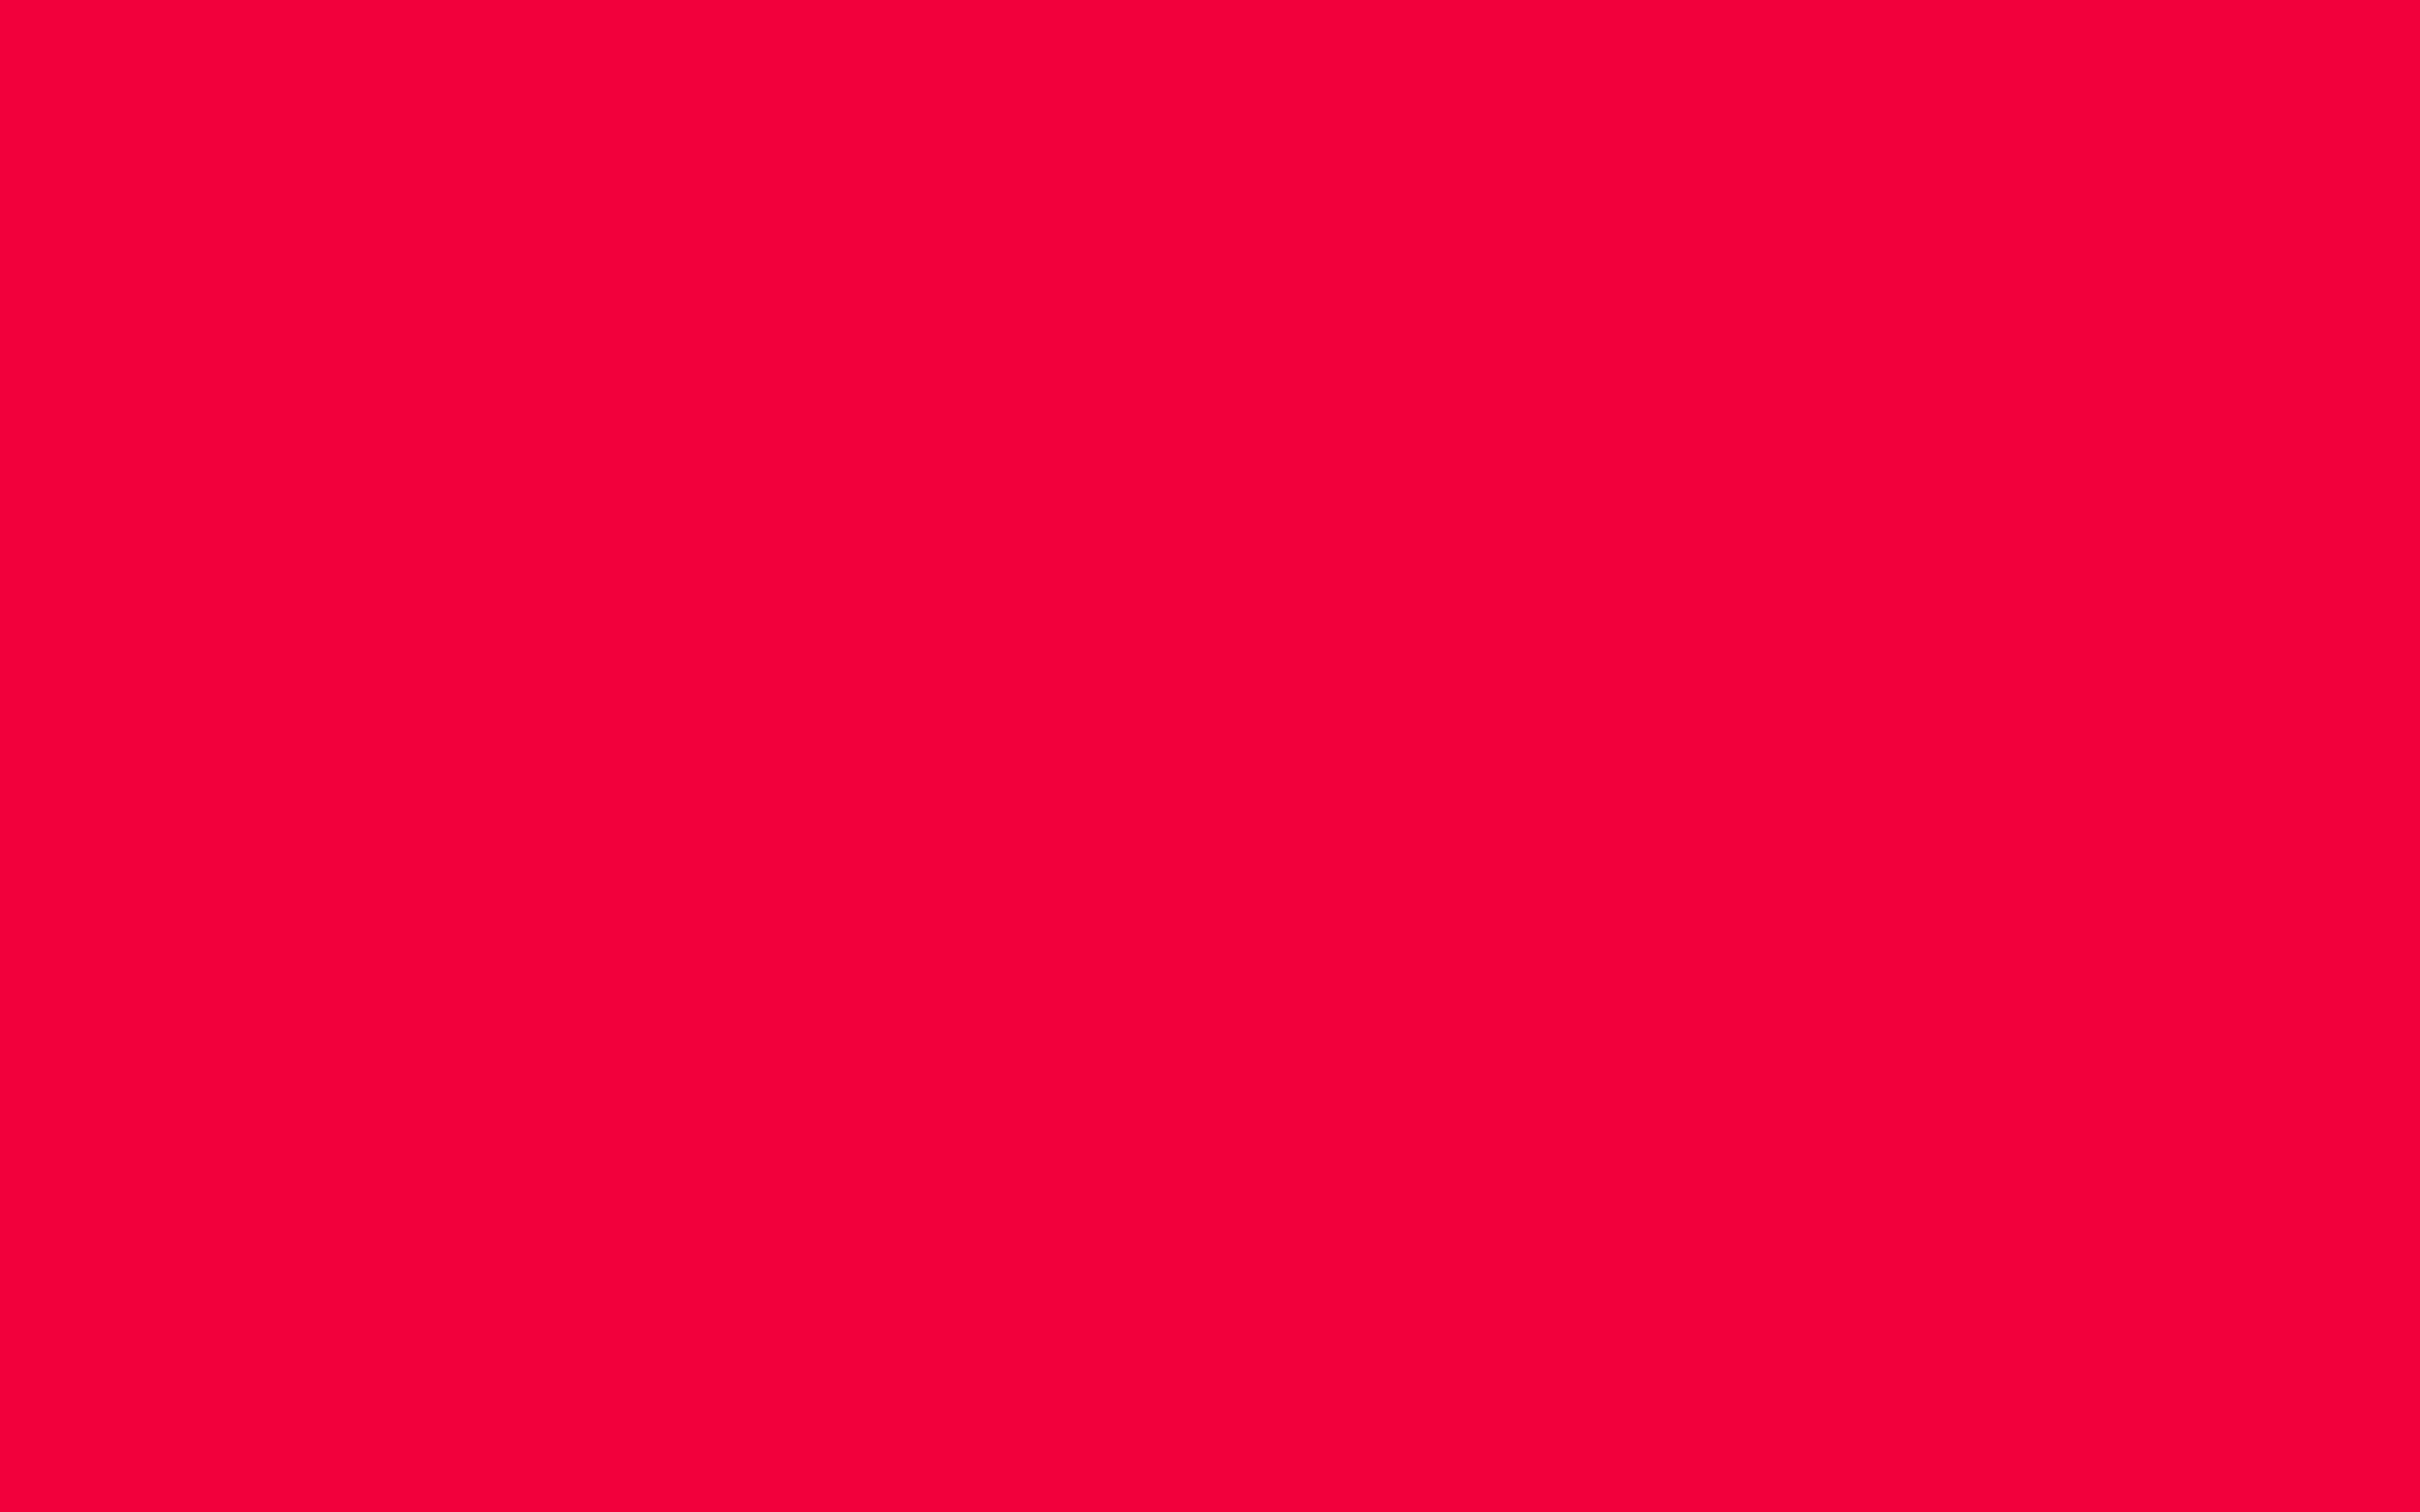 2880x1800 Red Munsell Solid Color Background